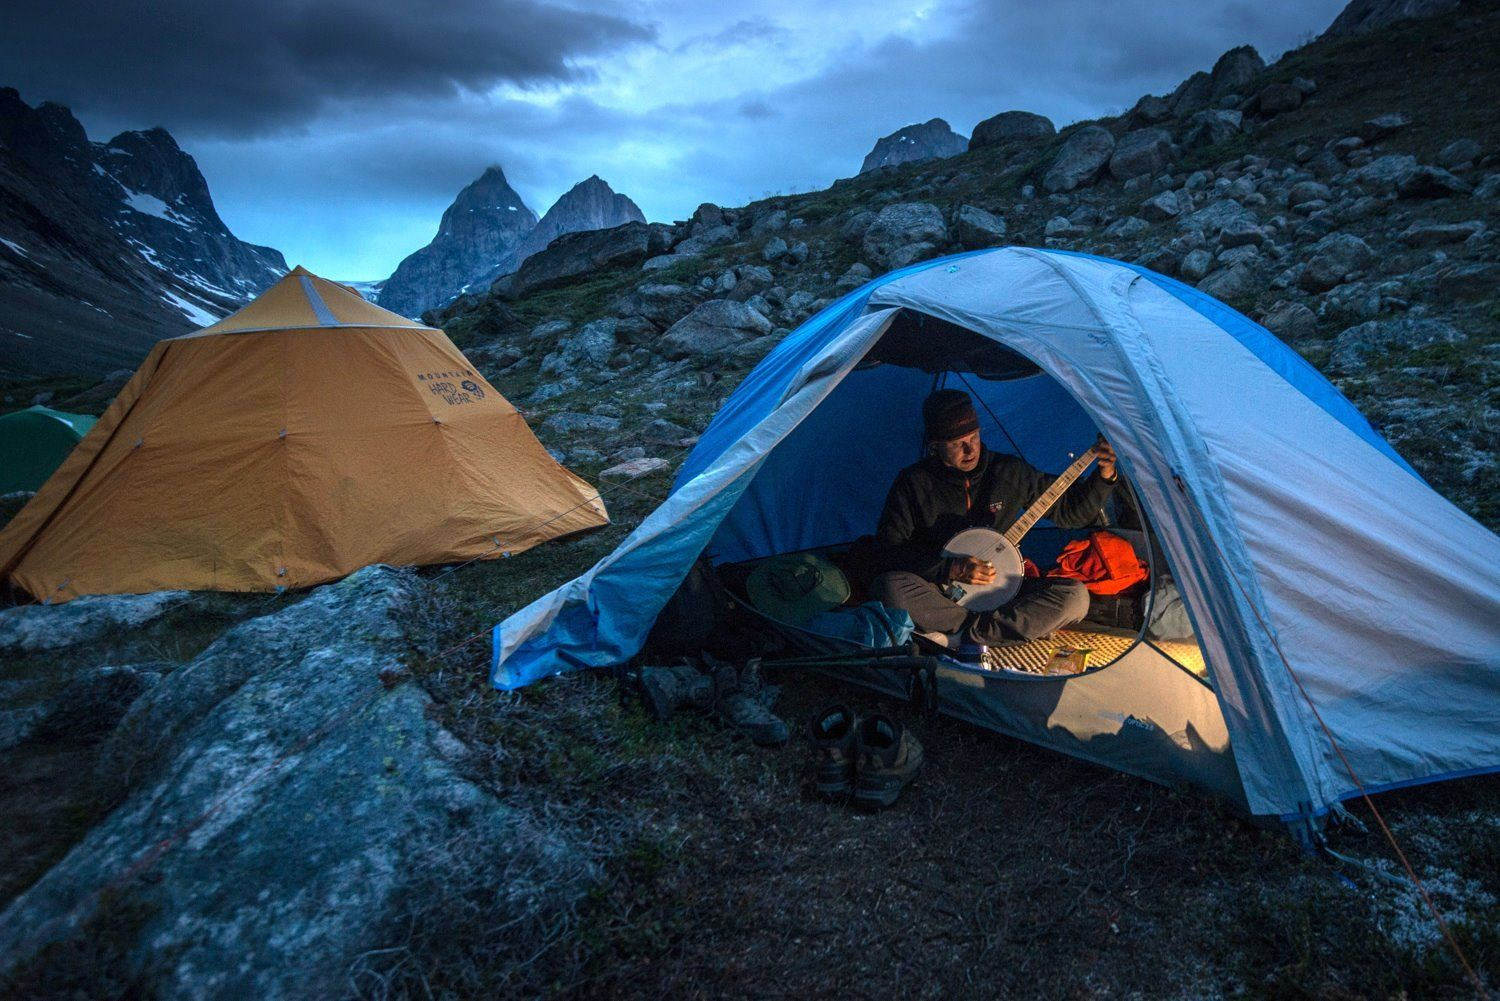 Mountain Hardwear athlete Mike Libecki waits out a storm in Greenland. Tent time isnu0027 & Mountain Hardwear athlete Mike Libecki waits out a storm in ...